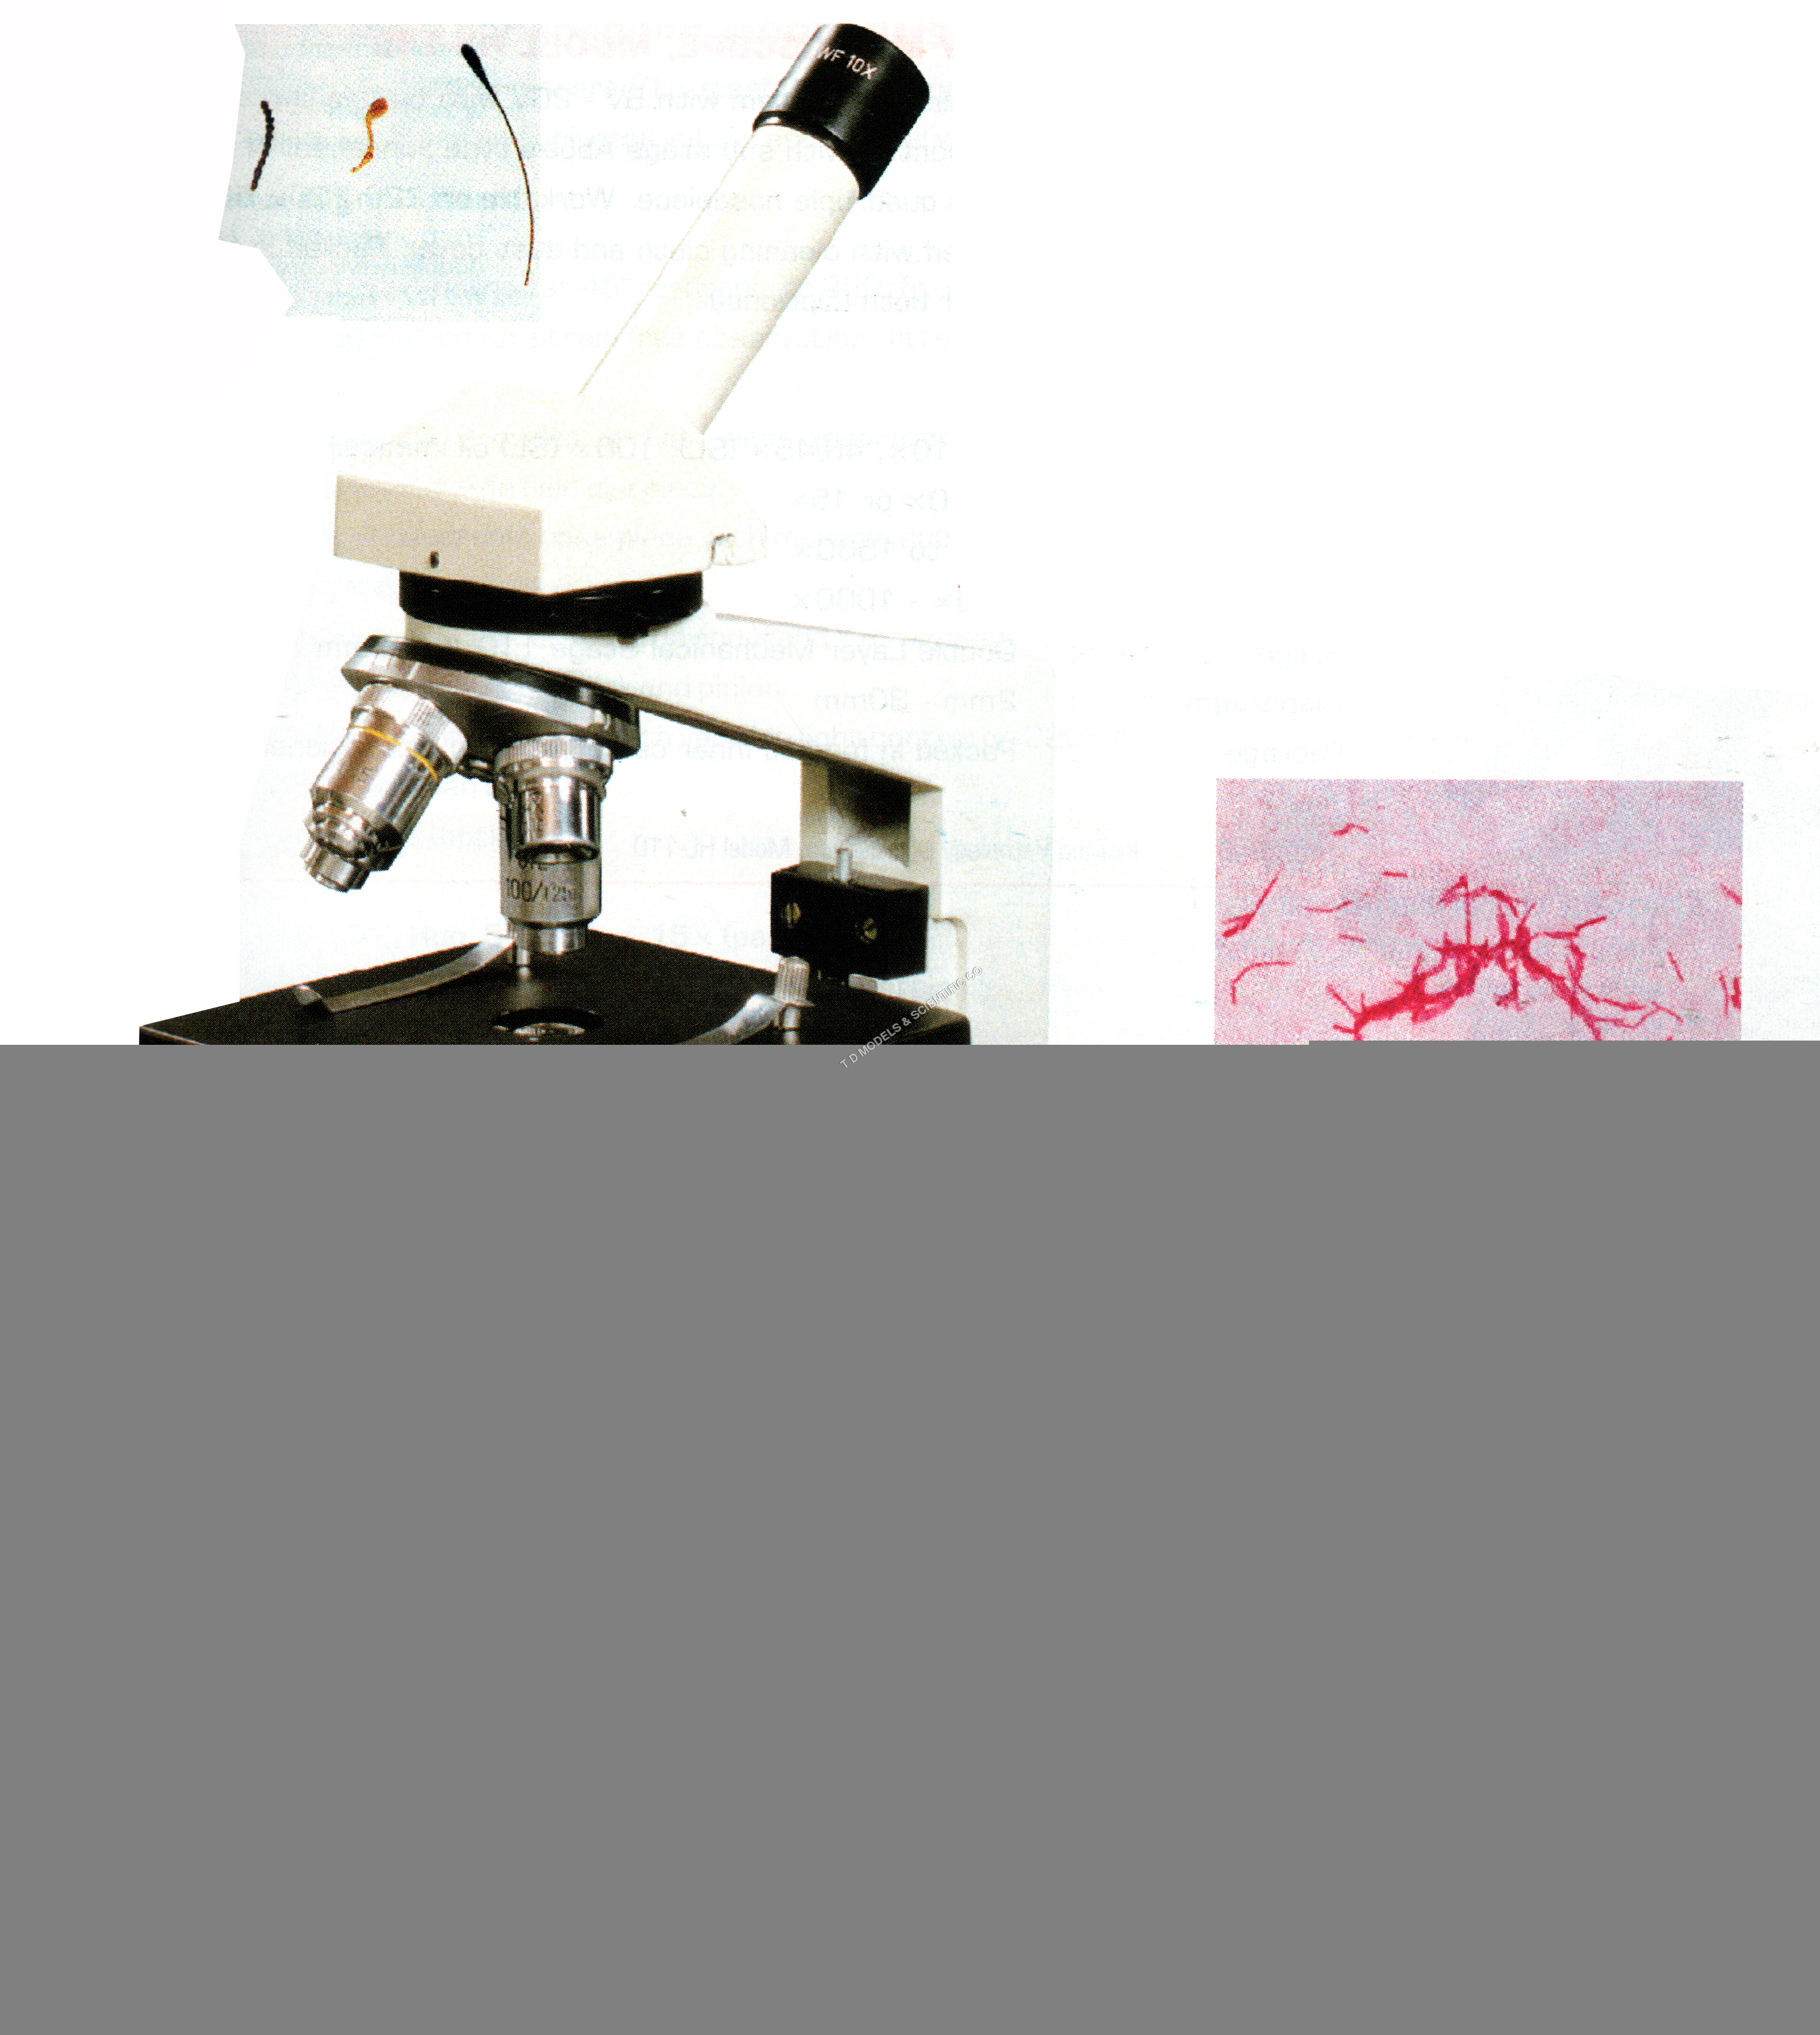 INCLINDED MONOCULAR MICROSCOPE MODEL SL-105 B